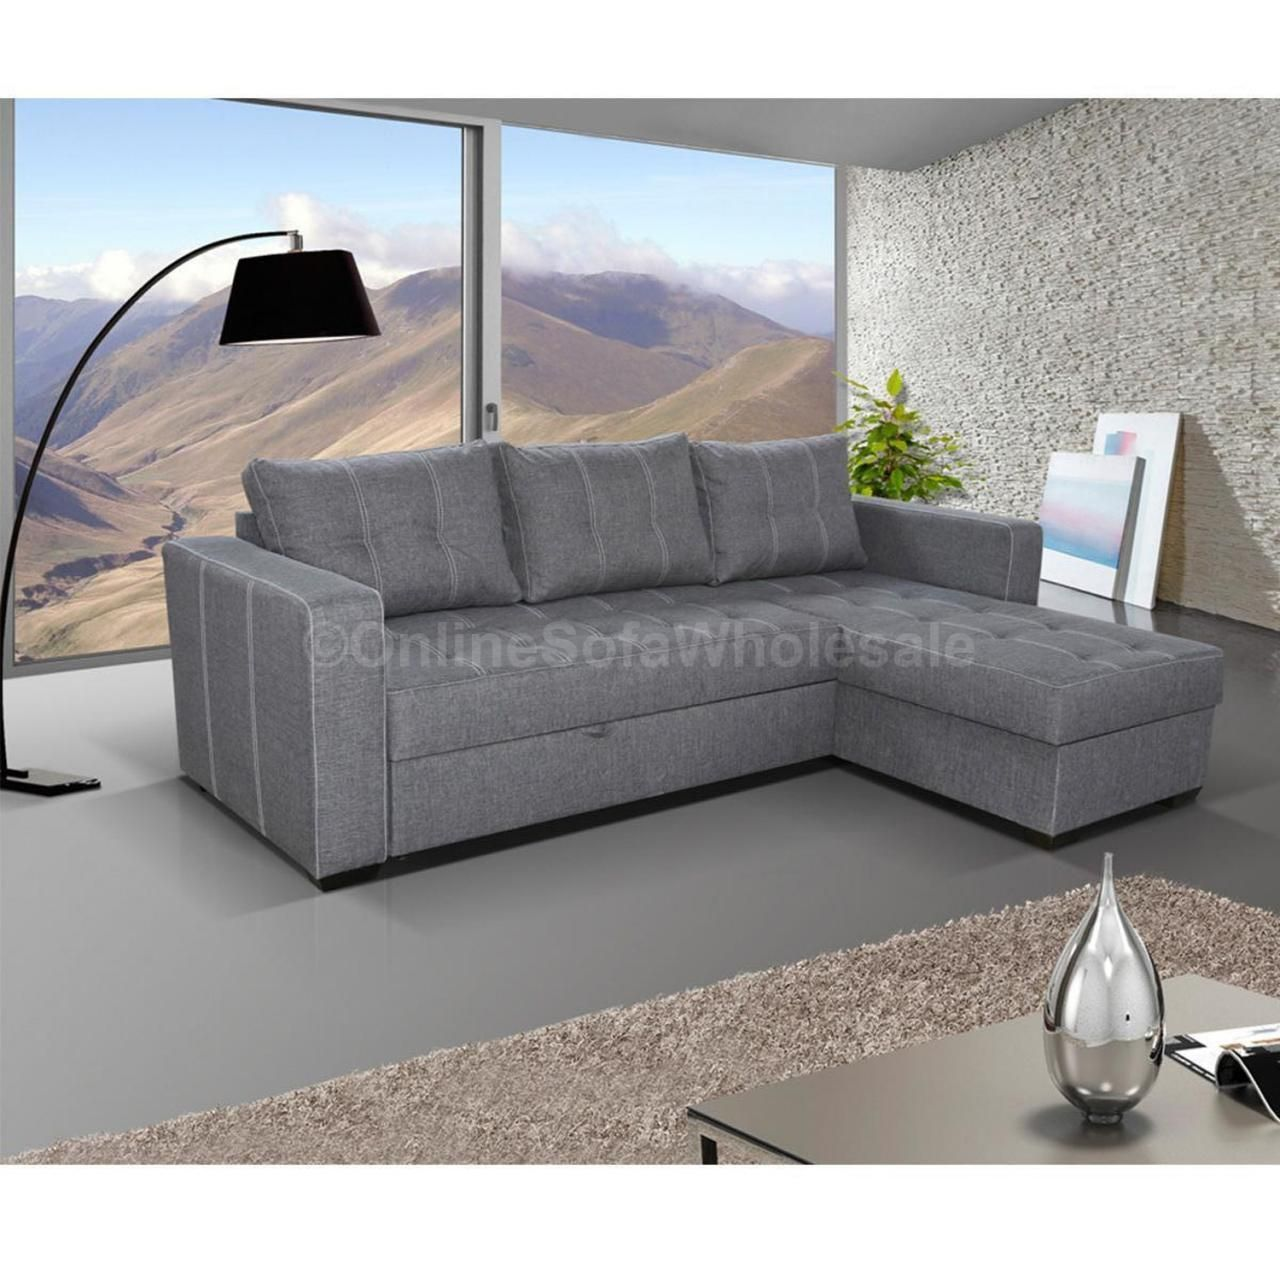 awesome Sofa Clearance , Amazing Sofa Clearance 32 For Sofa Design Ideas with Sofa Clearance , http://sofascouch.com/sofa-clearance/9538